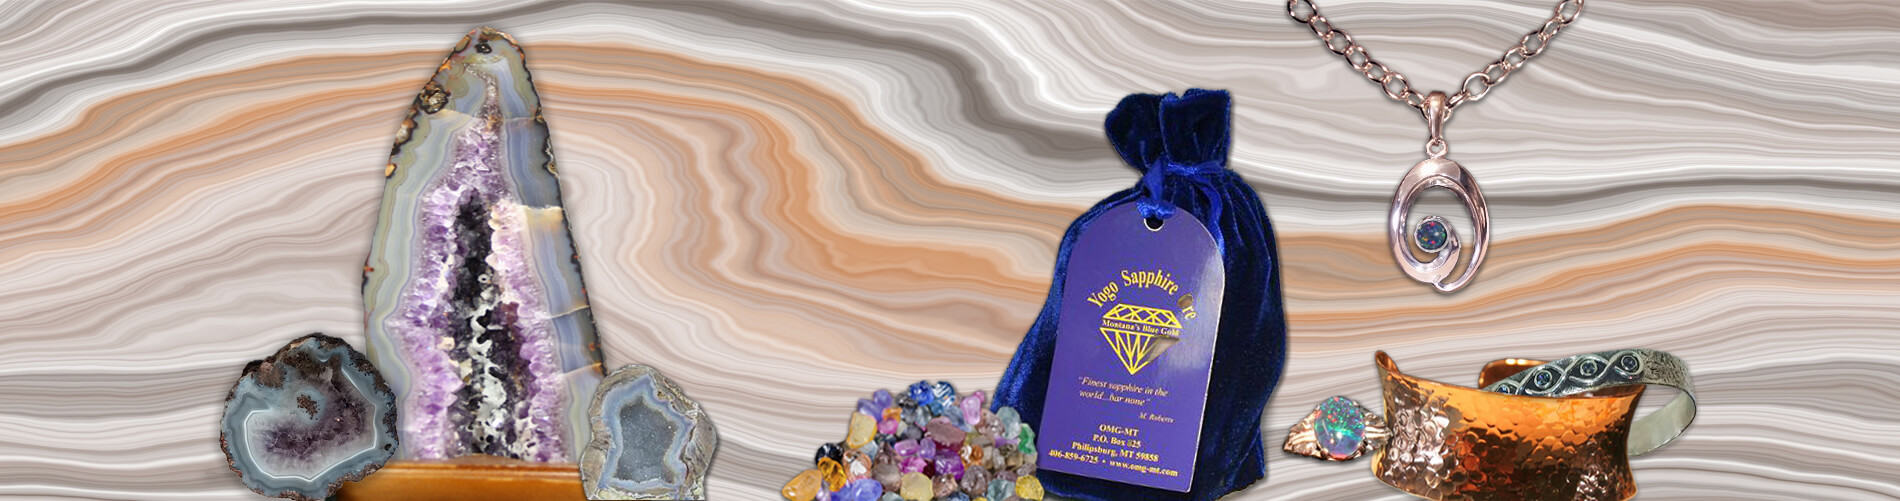 Geodes & Gems & Jewelry - Oh My